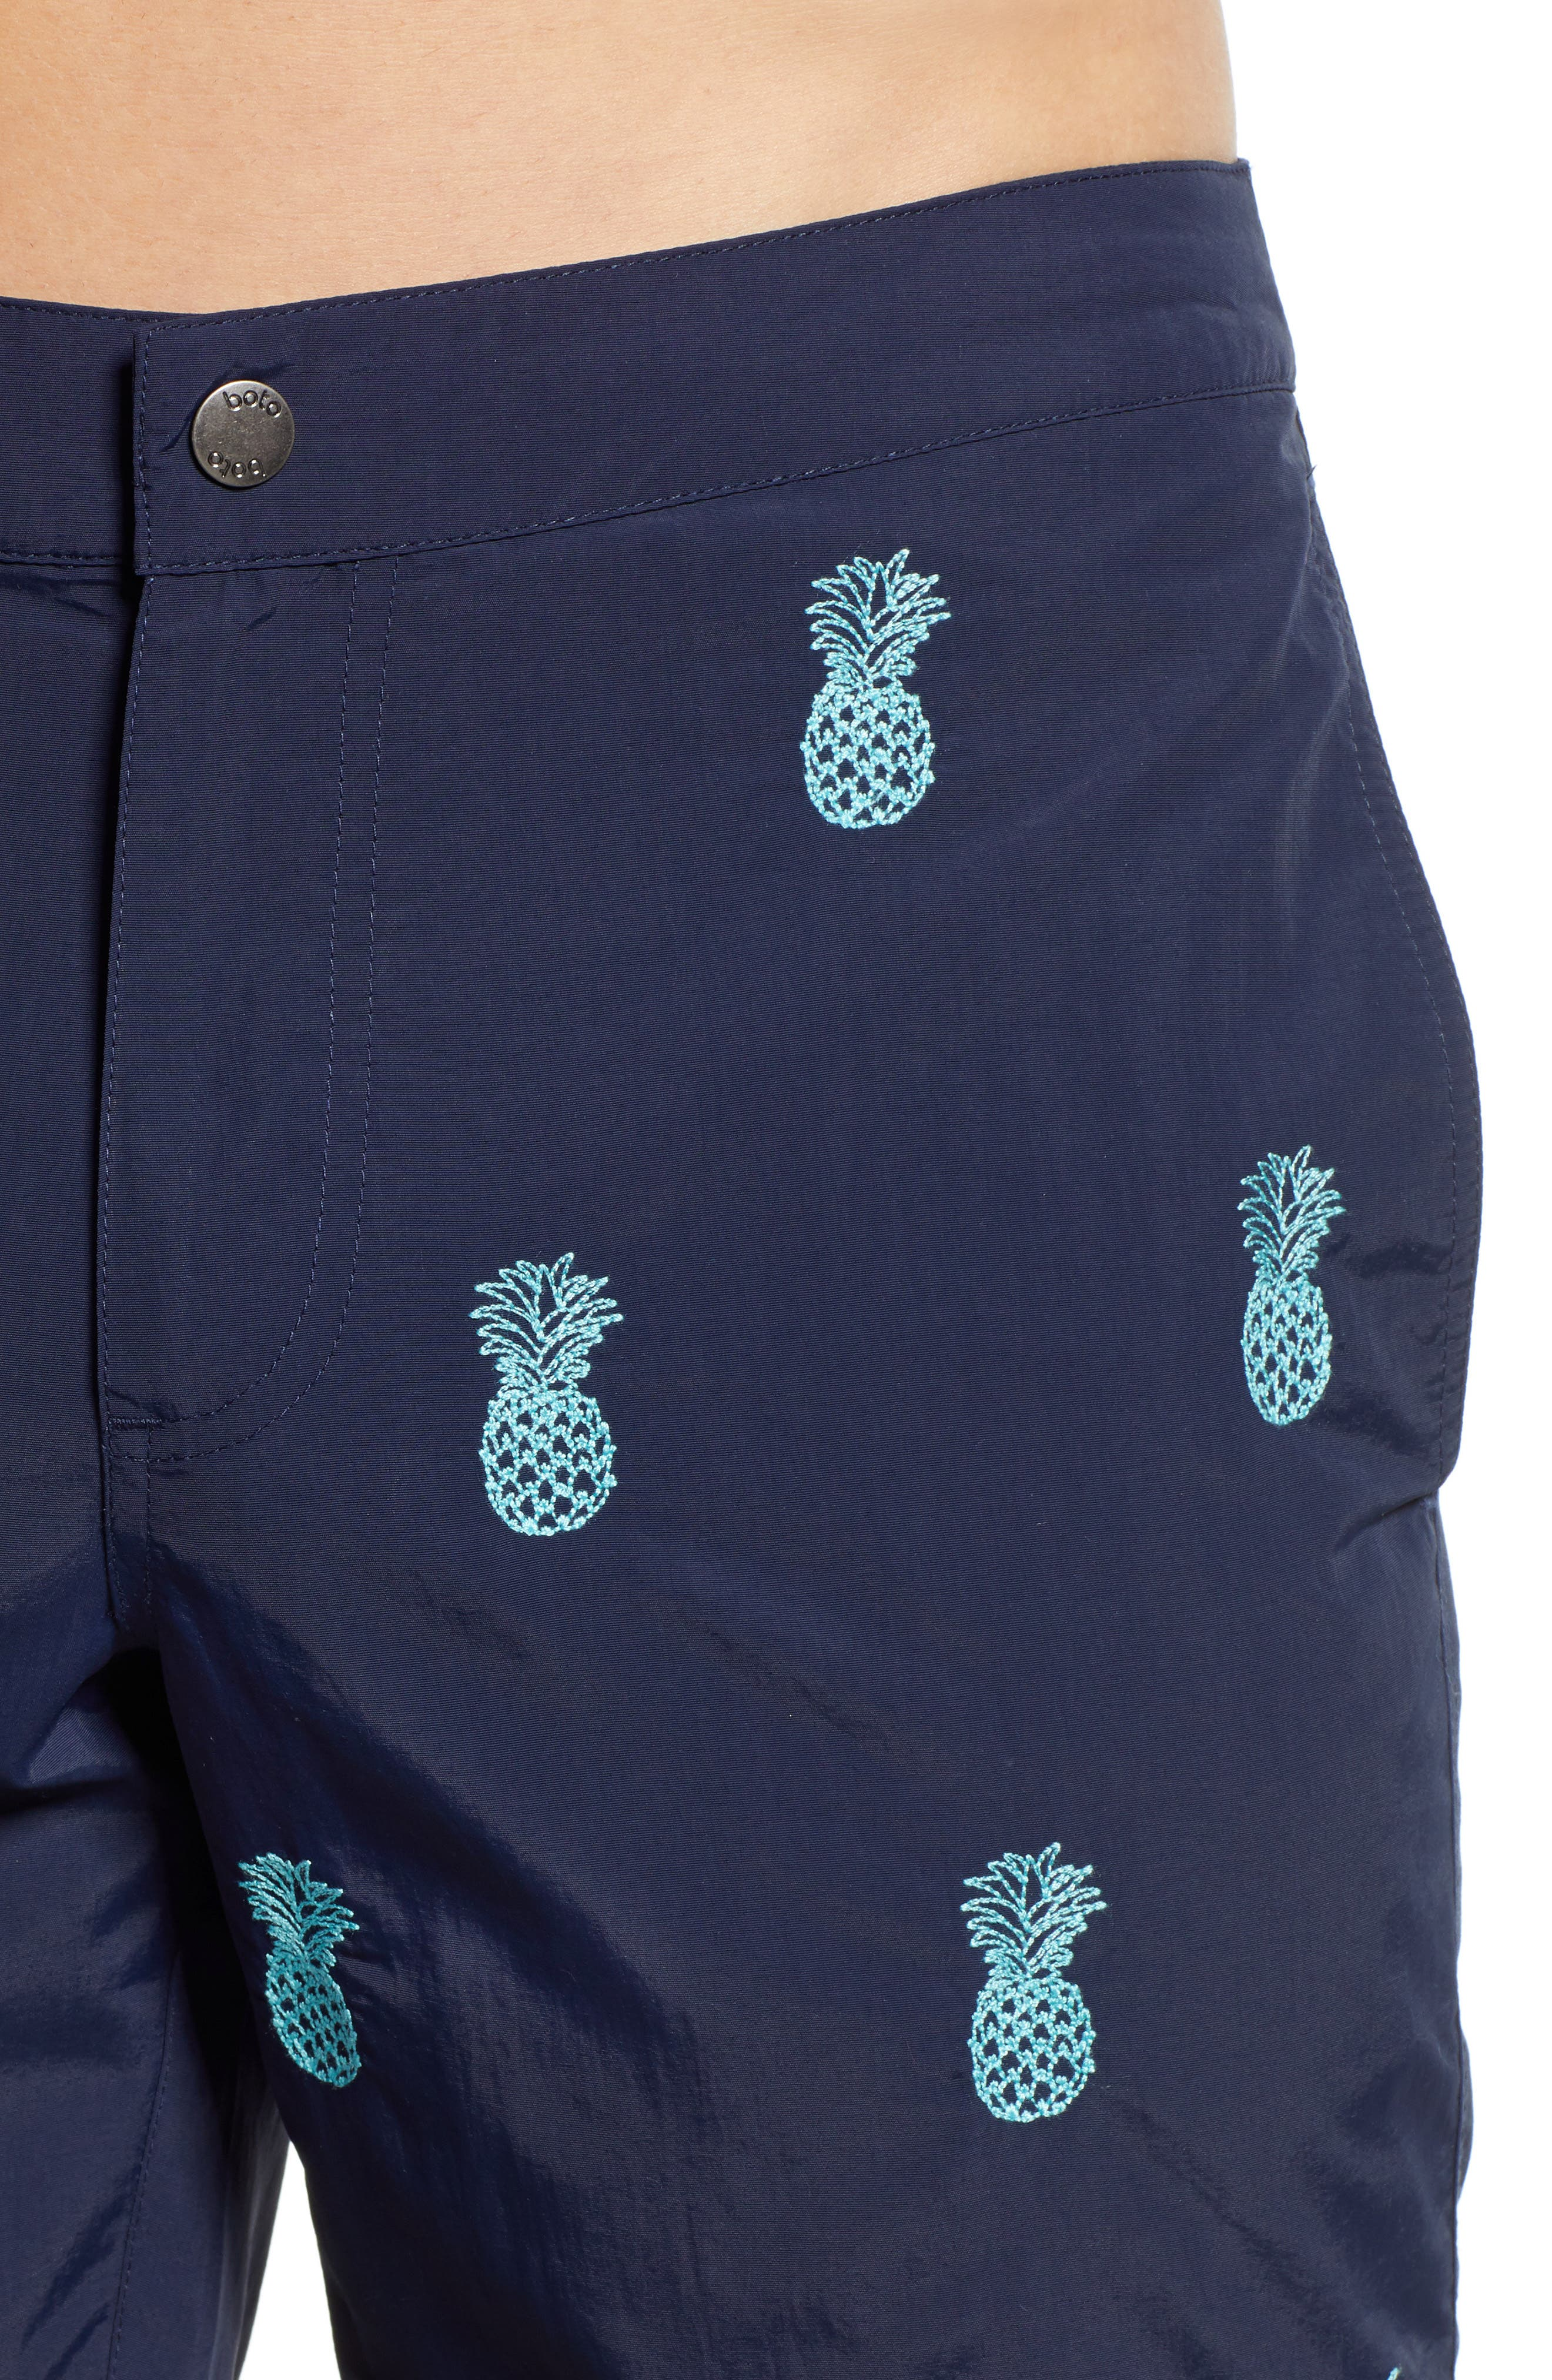 Aruba Embroidered 8.5 Inch Swim Trunks,                             Alternate thumbnail 4, color,                             NAVY EMBROIDERED PINEAPPLES